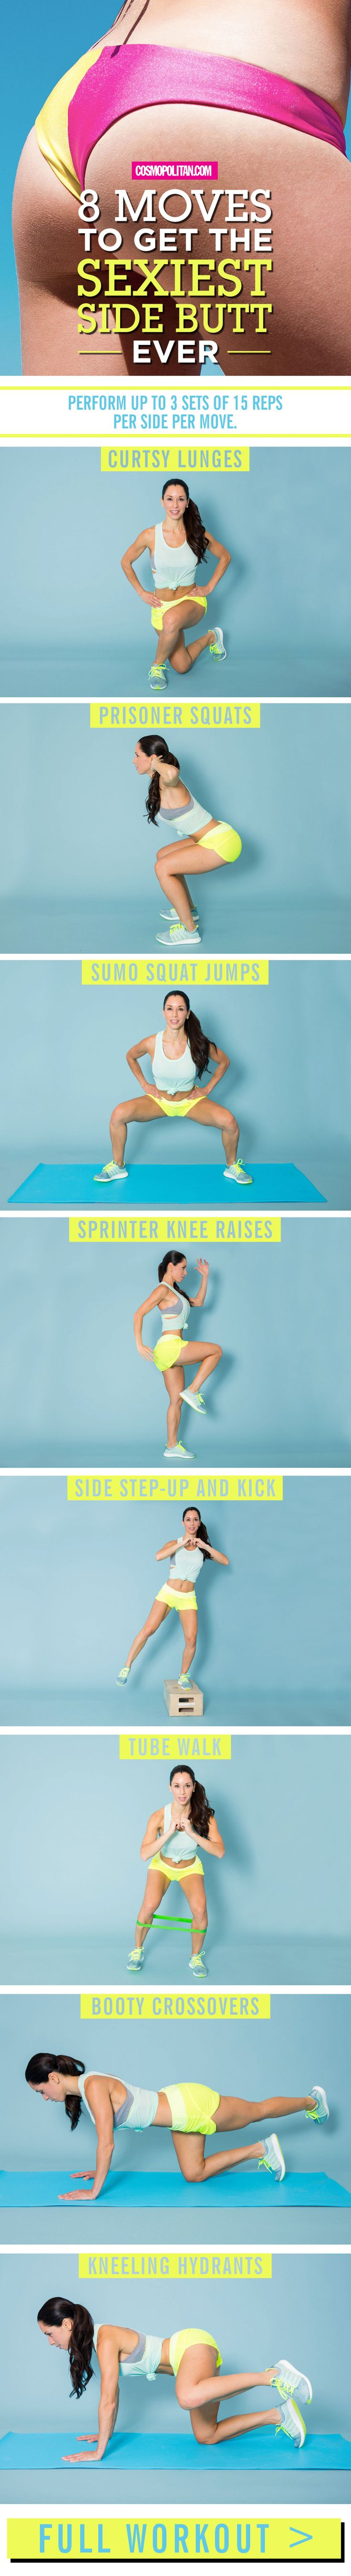 8 Moves to Get the Sexiest Side Butt Ever